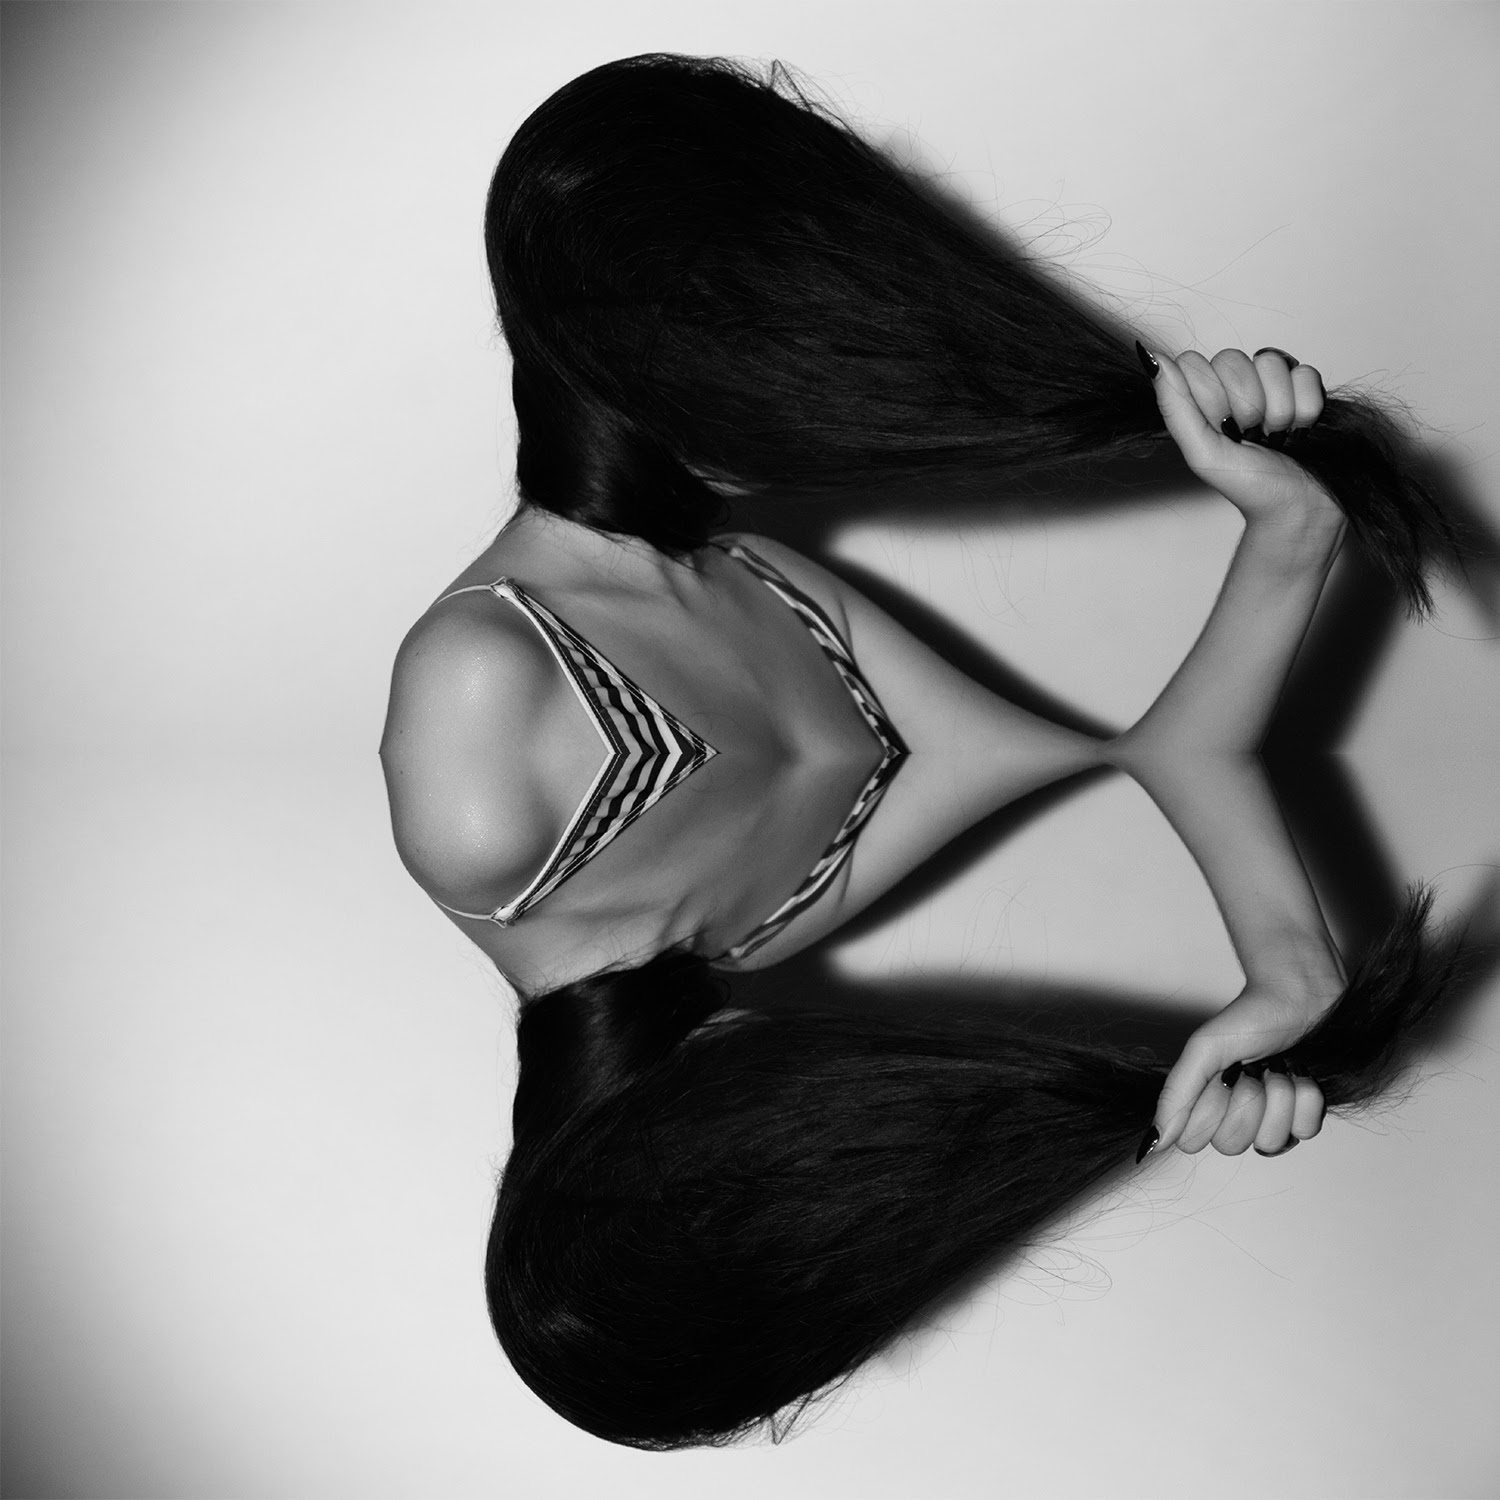 Psychic Twin streams her new album 'Strange Diary'. The full-length is out today via Polyvinyl Records.